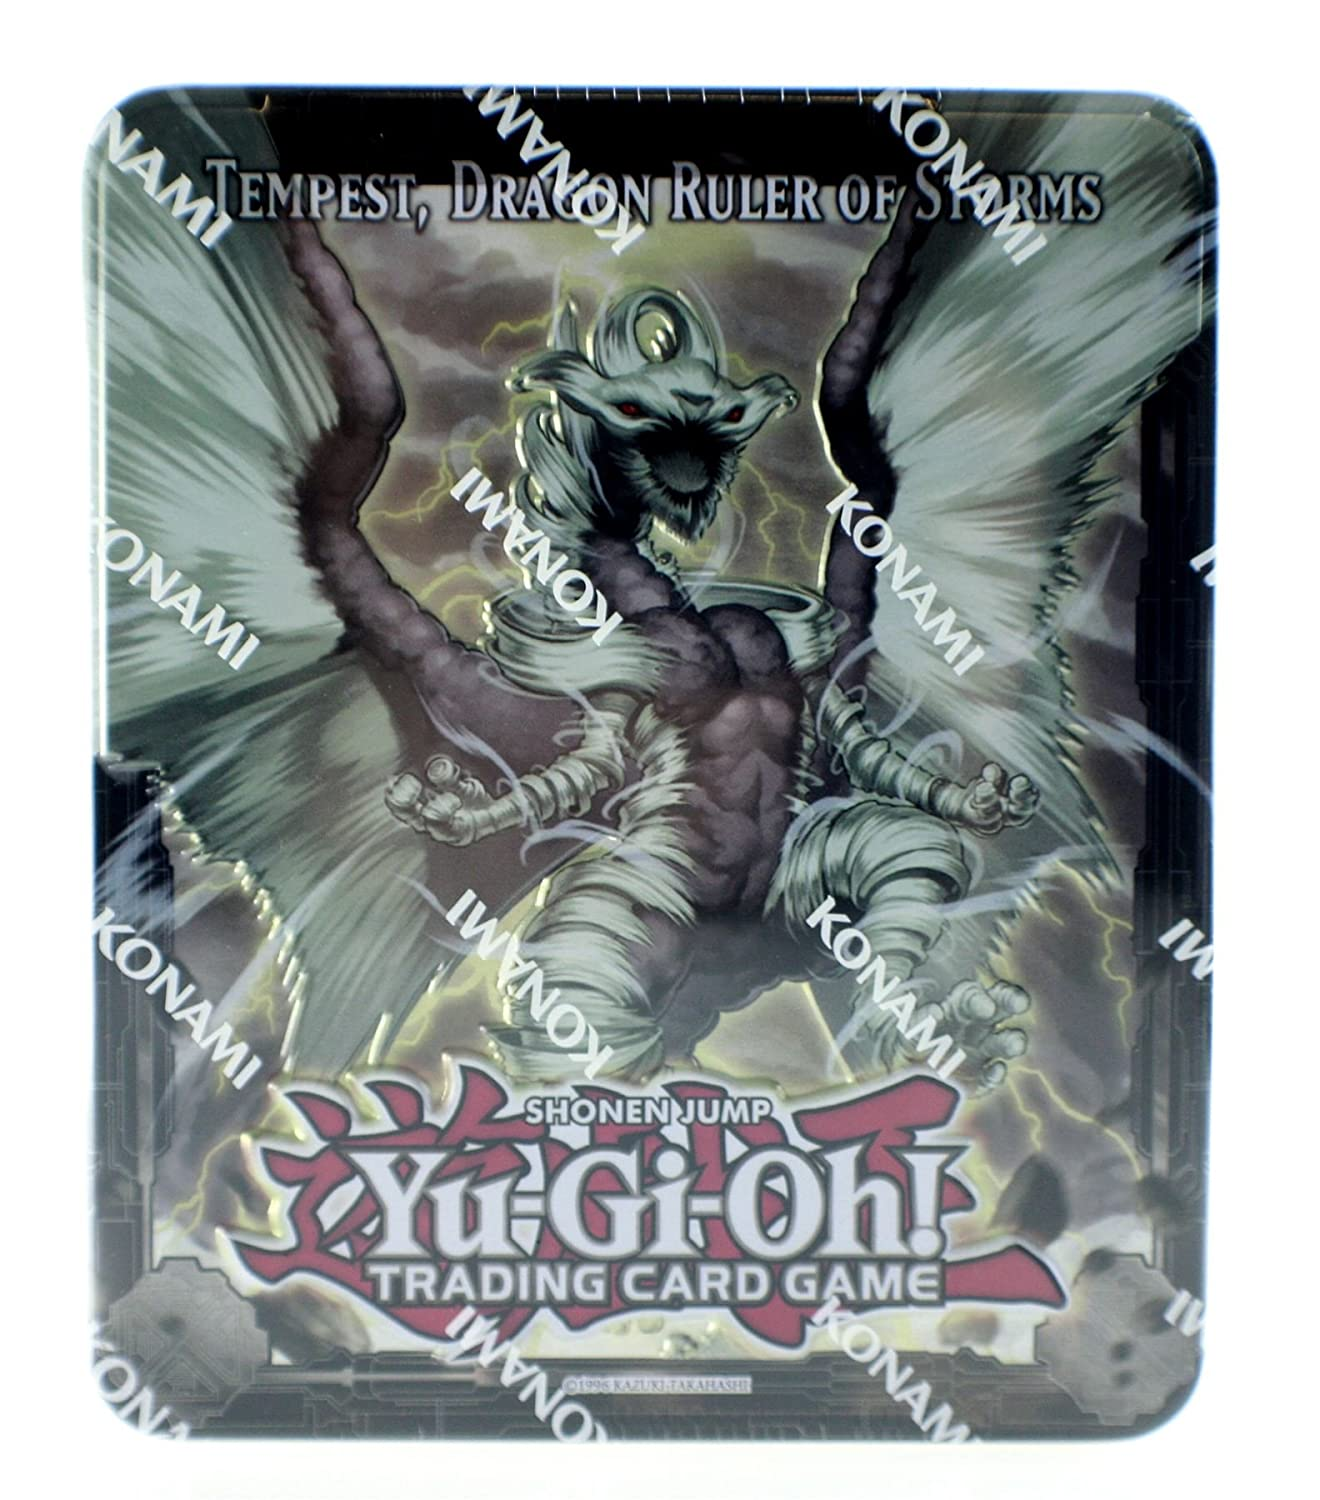 YuGiOh Tempest Dragon Ruler of Storms Collectors Tin 2013 Trading Card Game